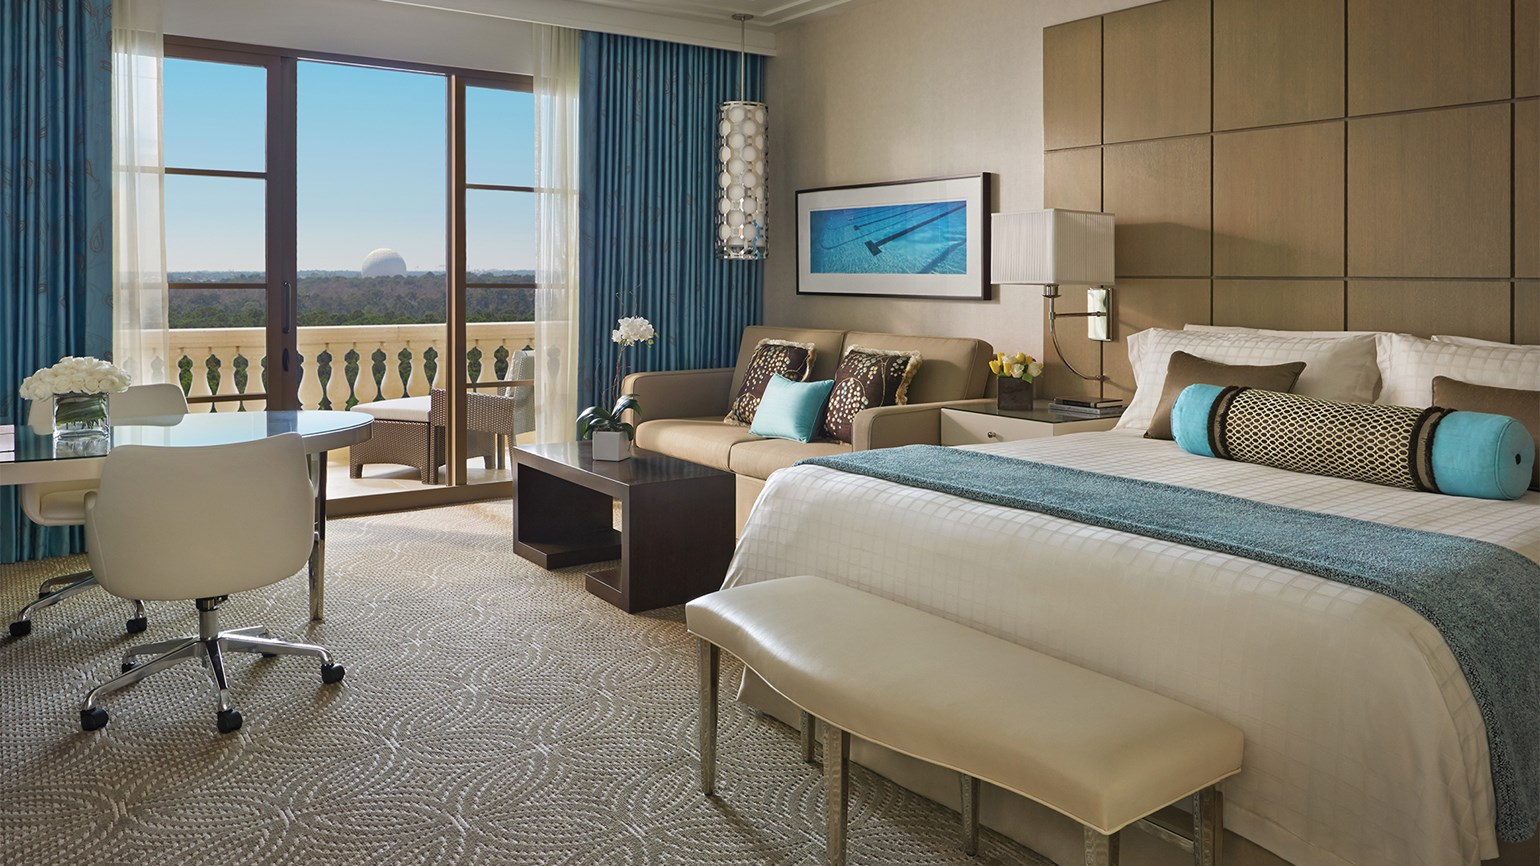 In Orlando, Four Seasons creates its own kind of magic